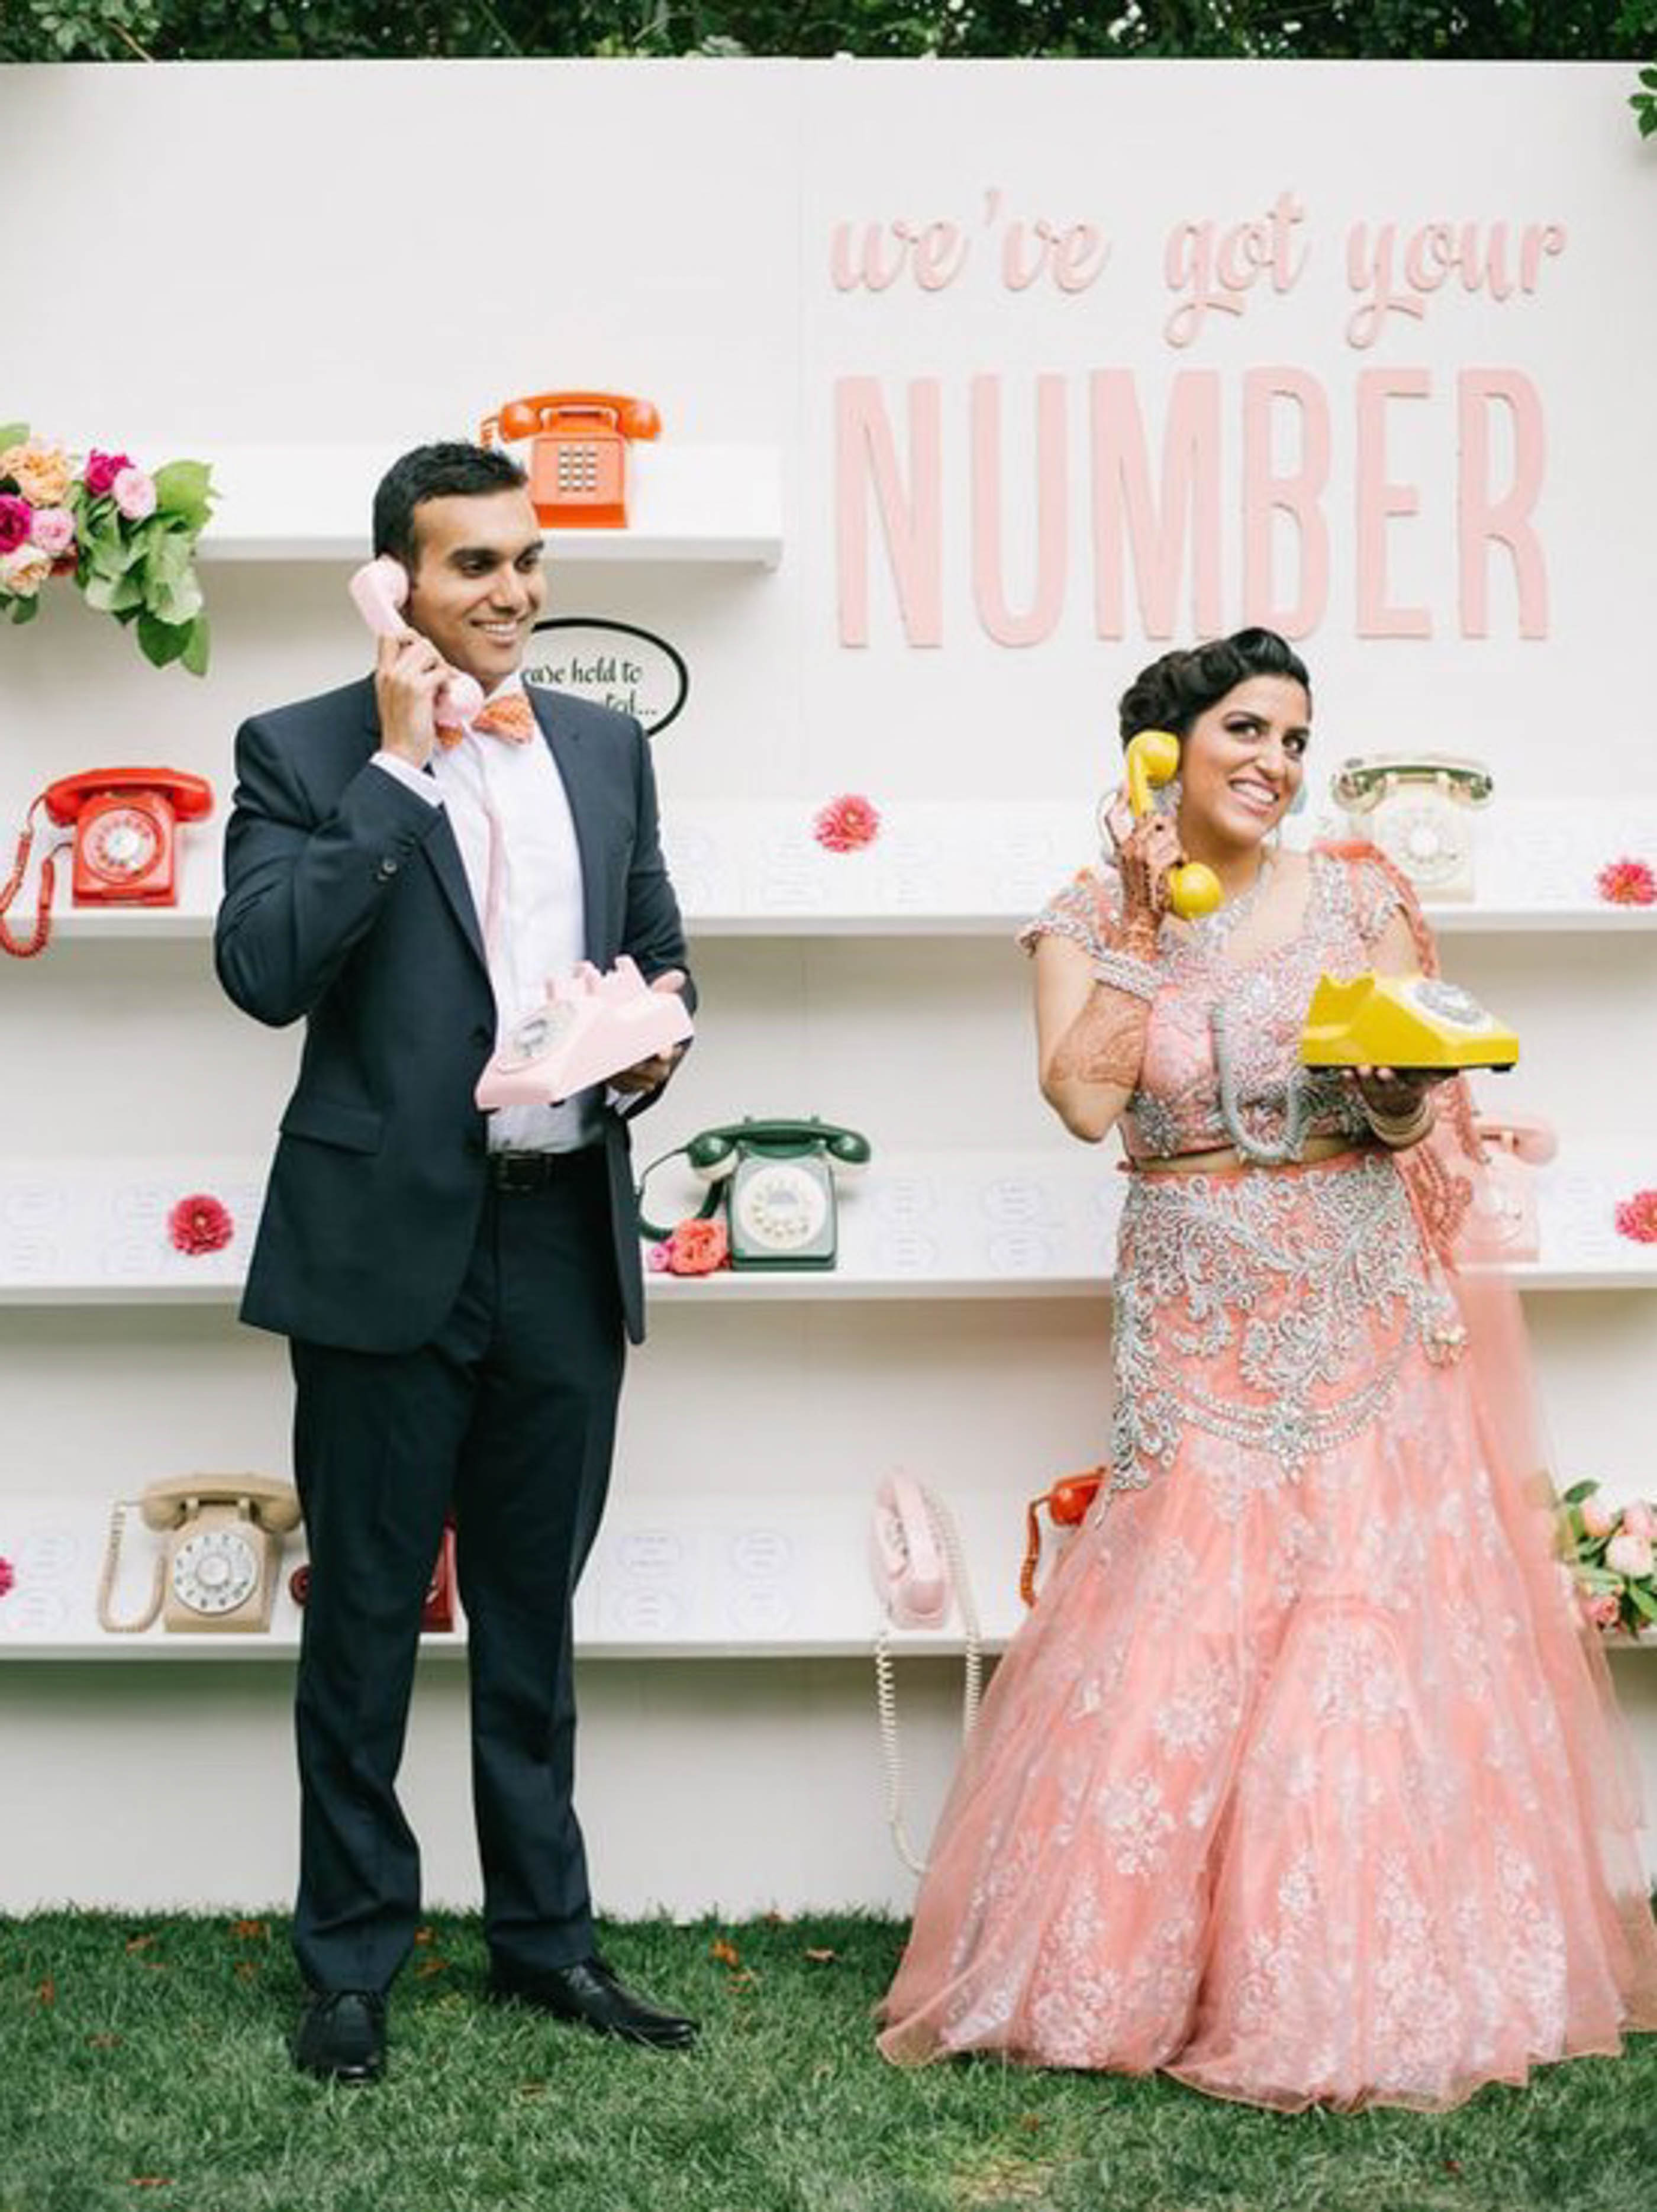 5 Social Media Etiquette Tips For The New Age Bride - The Maharani Diaries - Having a photo booth at your wedding is a pretty good idea for the social media lovers!